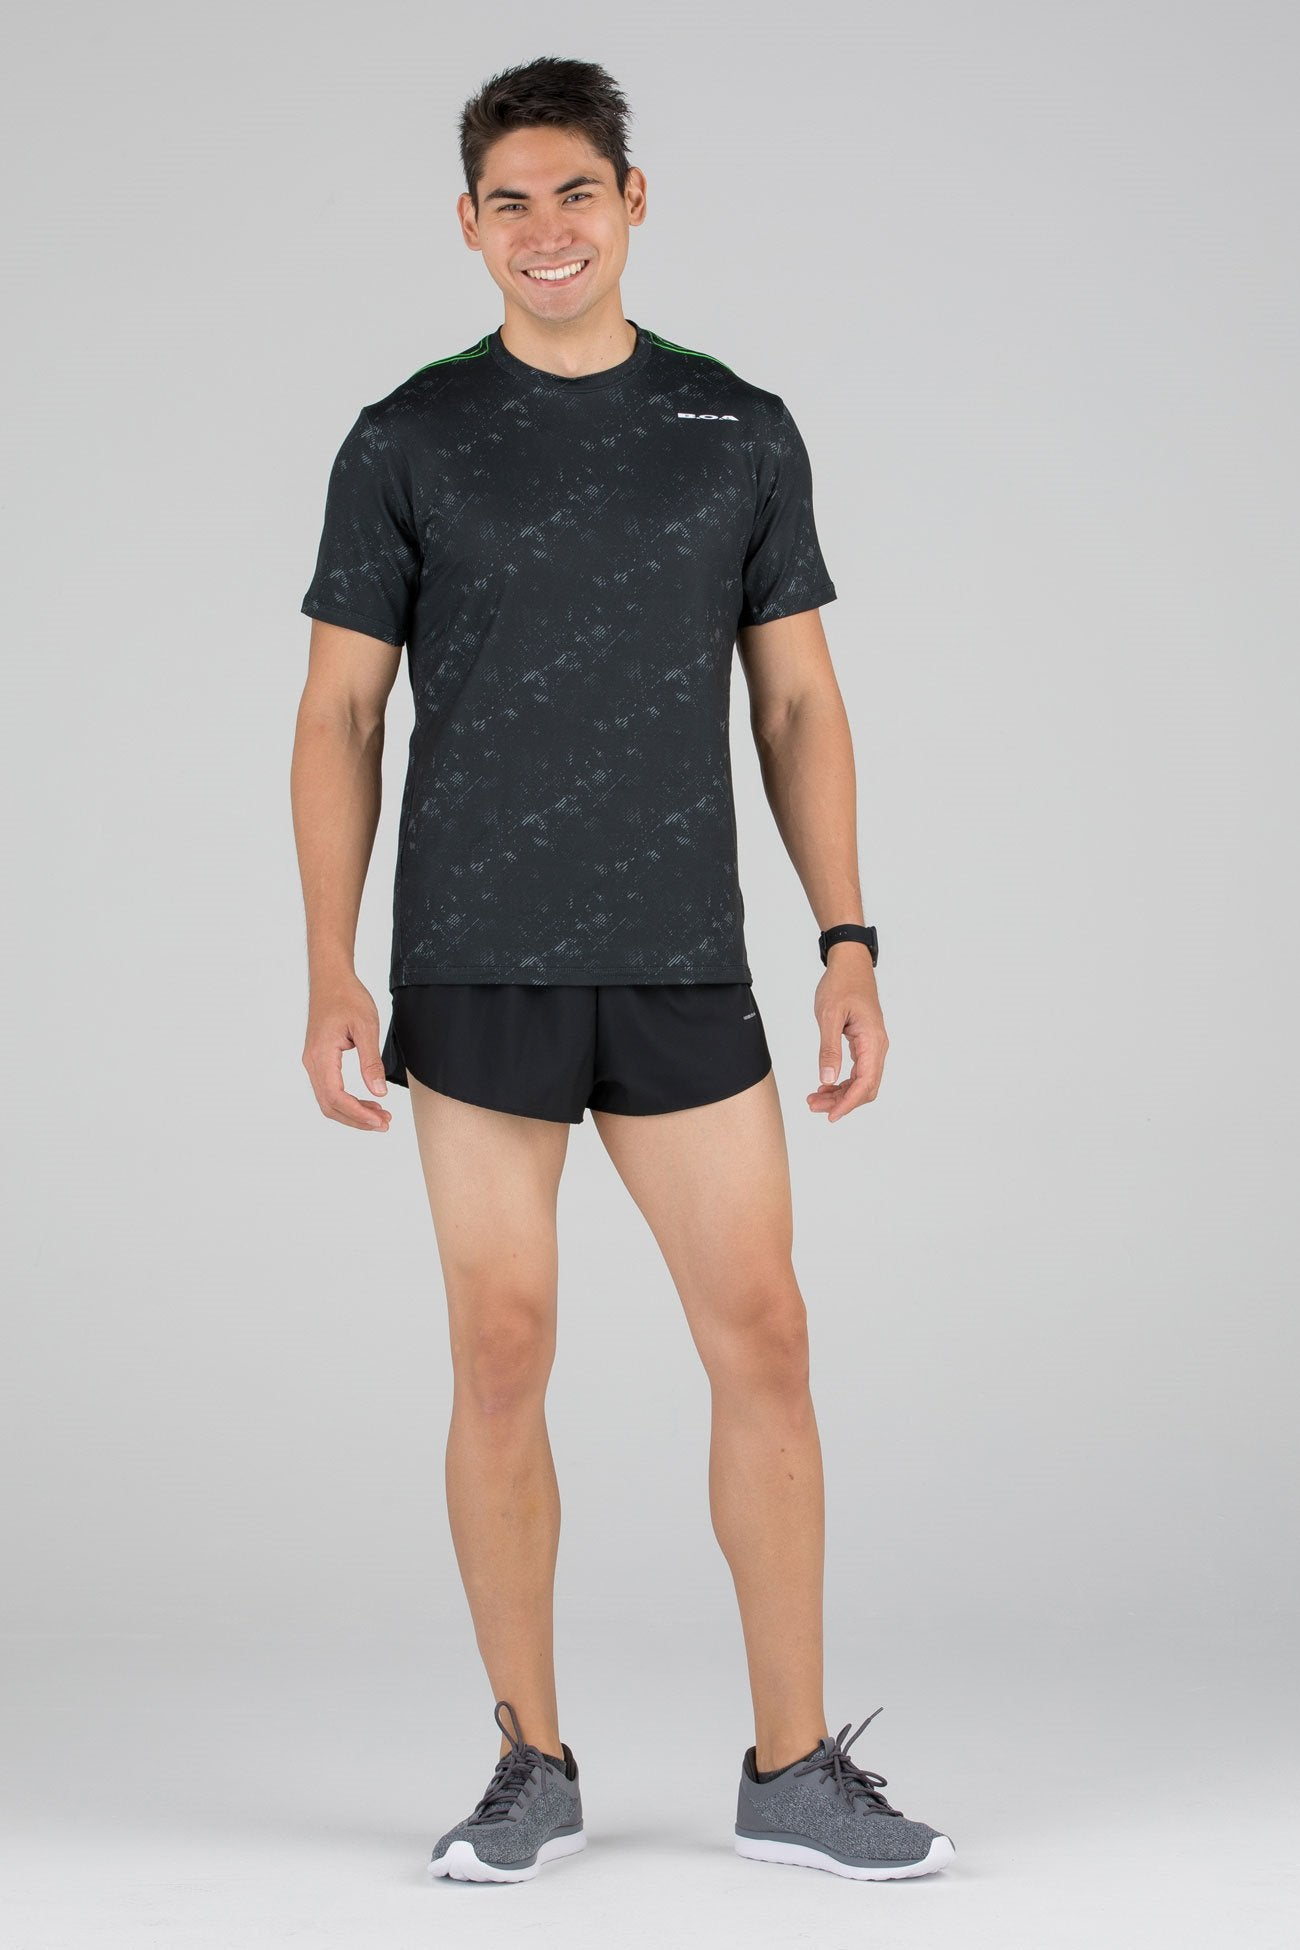 4459ab55b12 MENS HYPERSOFT SHORT SLEEVE RUNNING SHIRT- ILLUSION BLACK – BOA ...